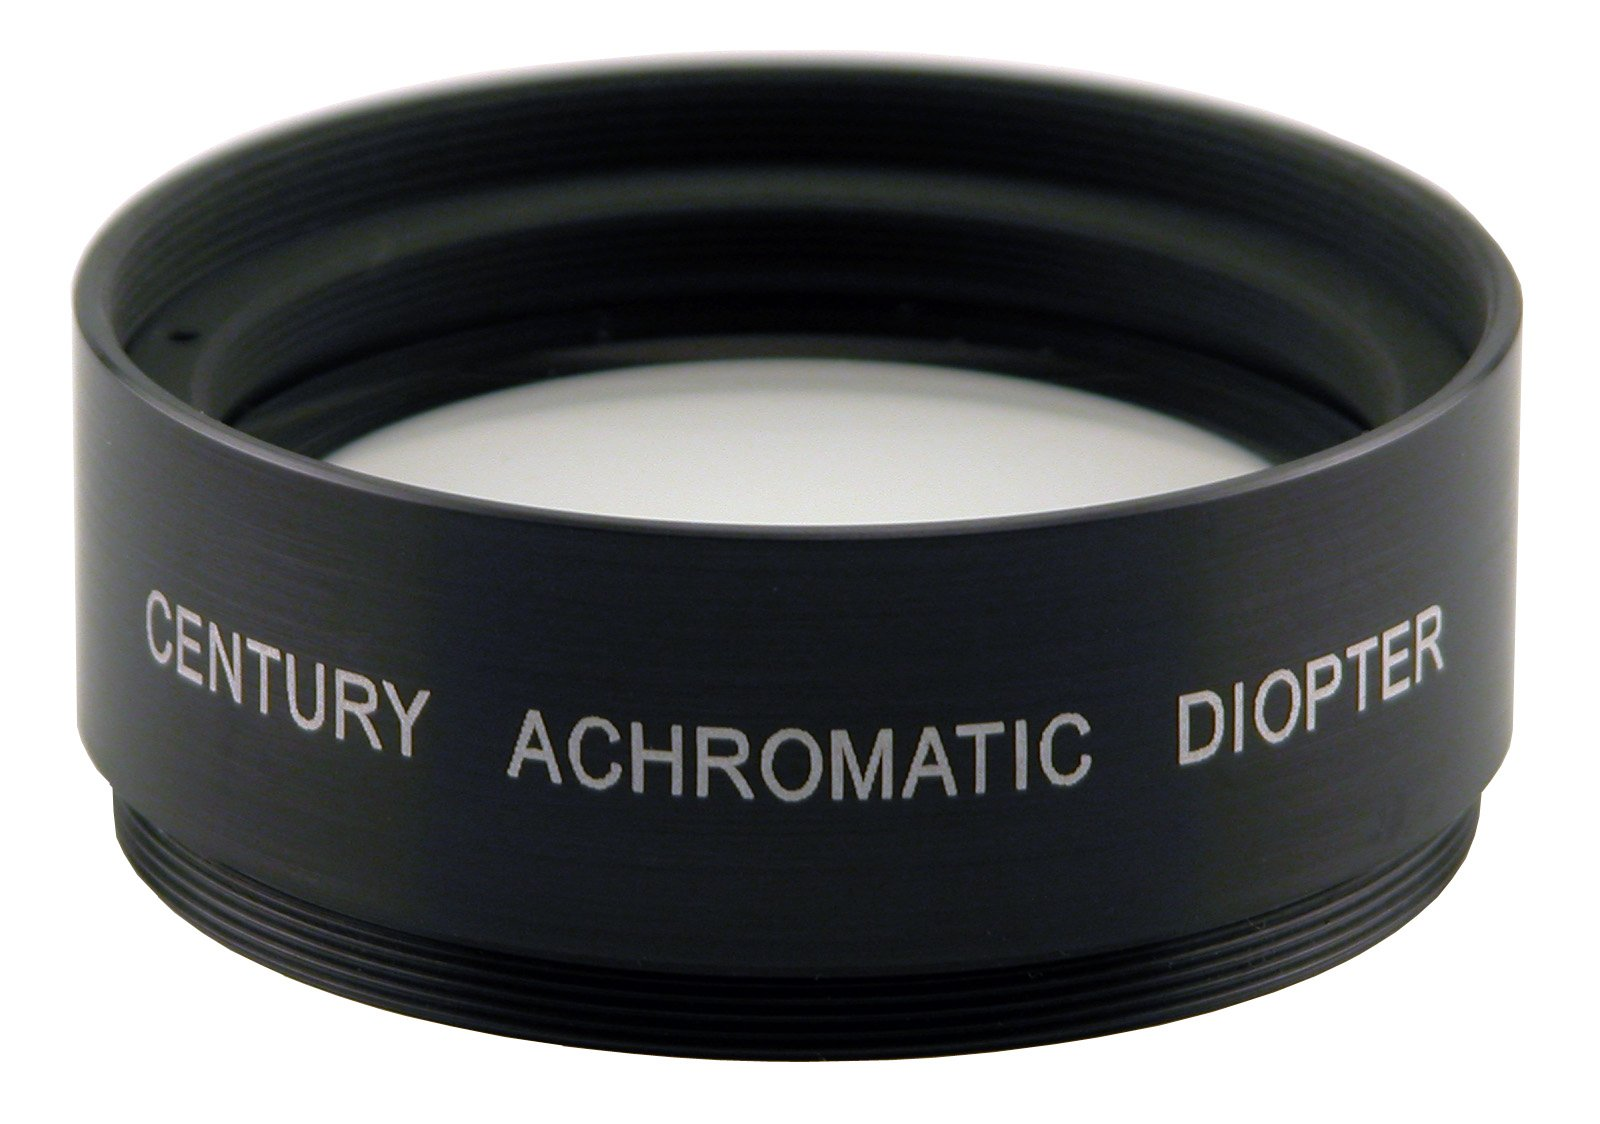 Century 58mm +4.0 Achromatic Diopter